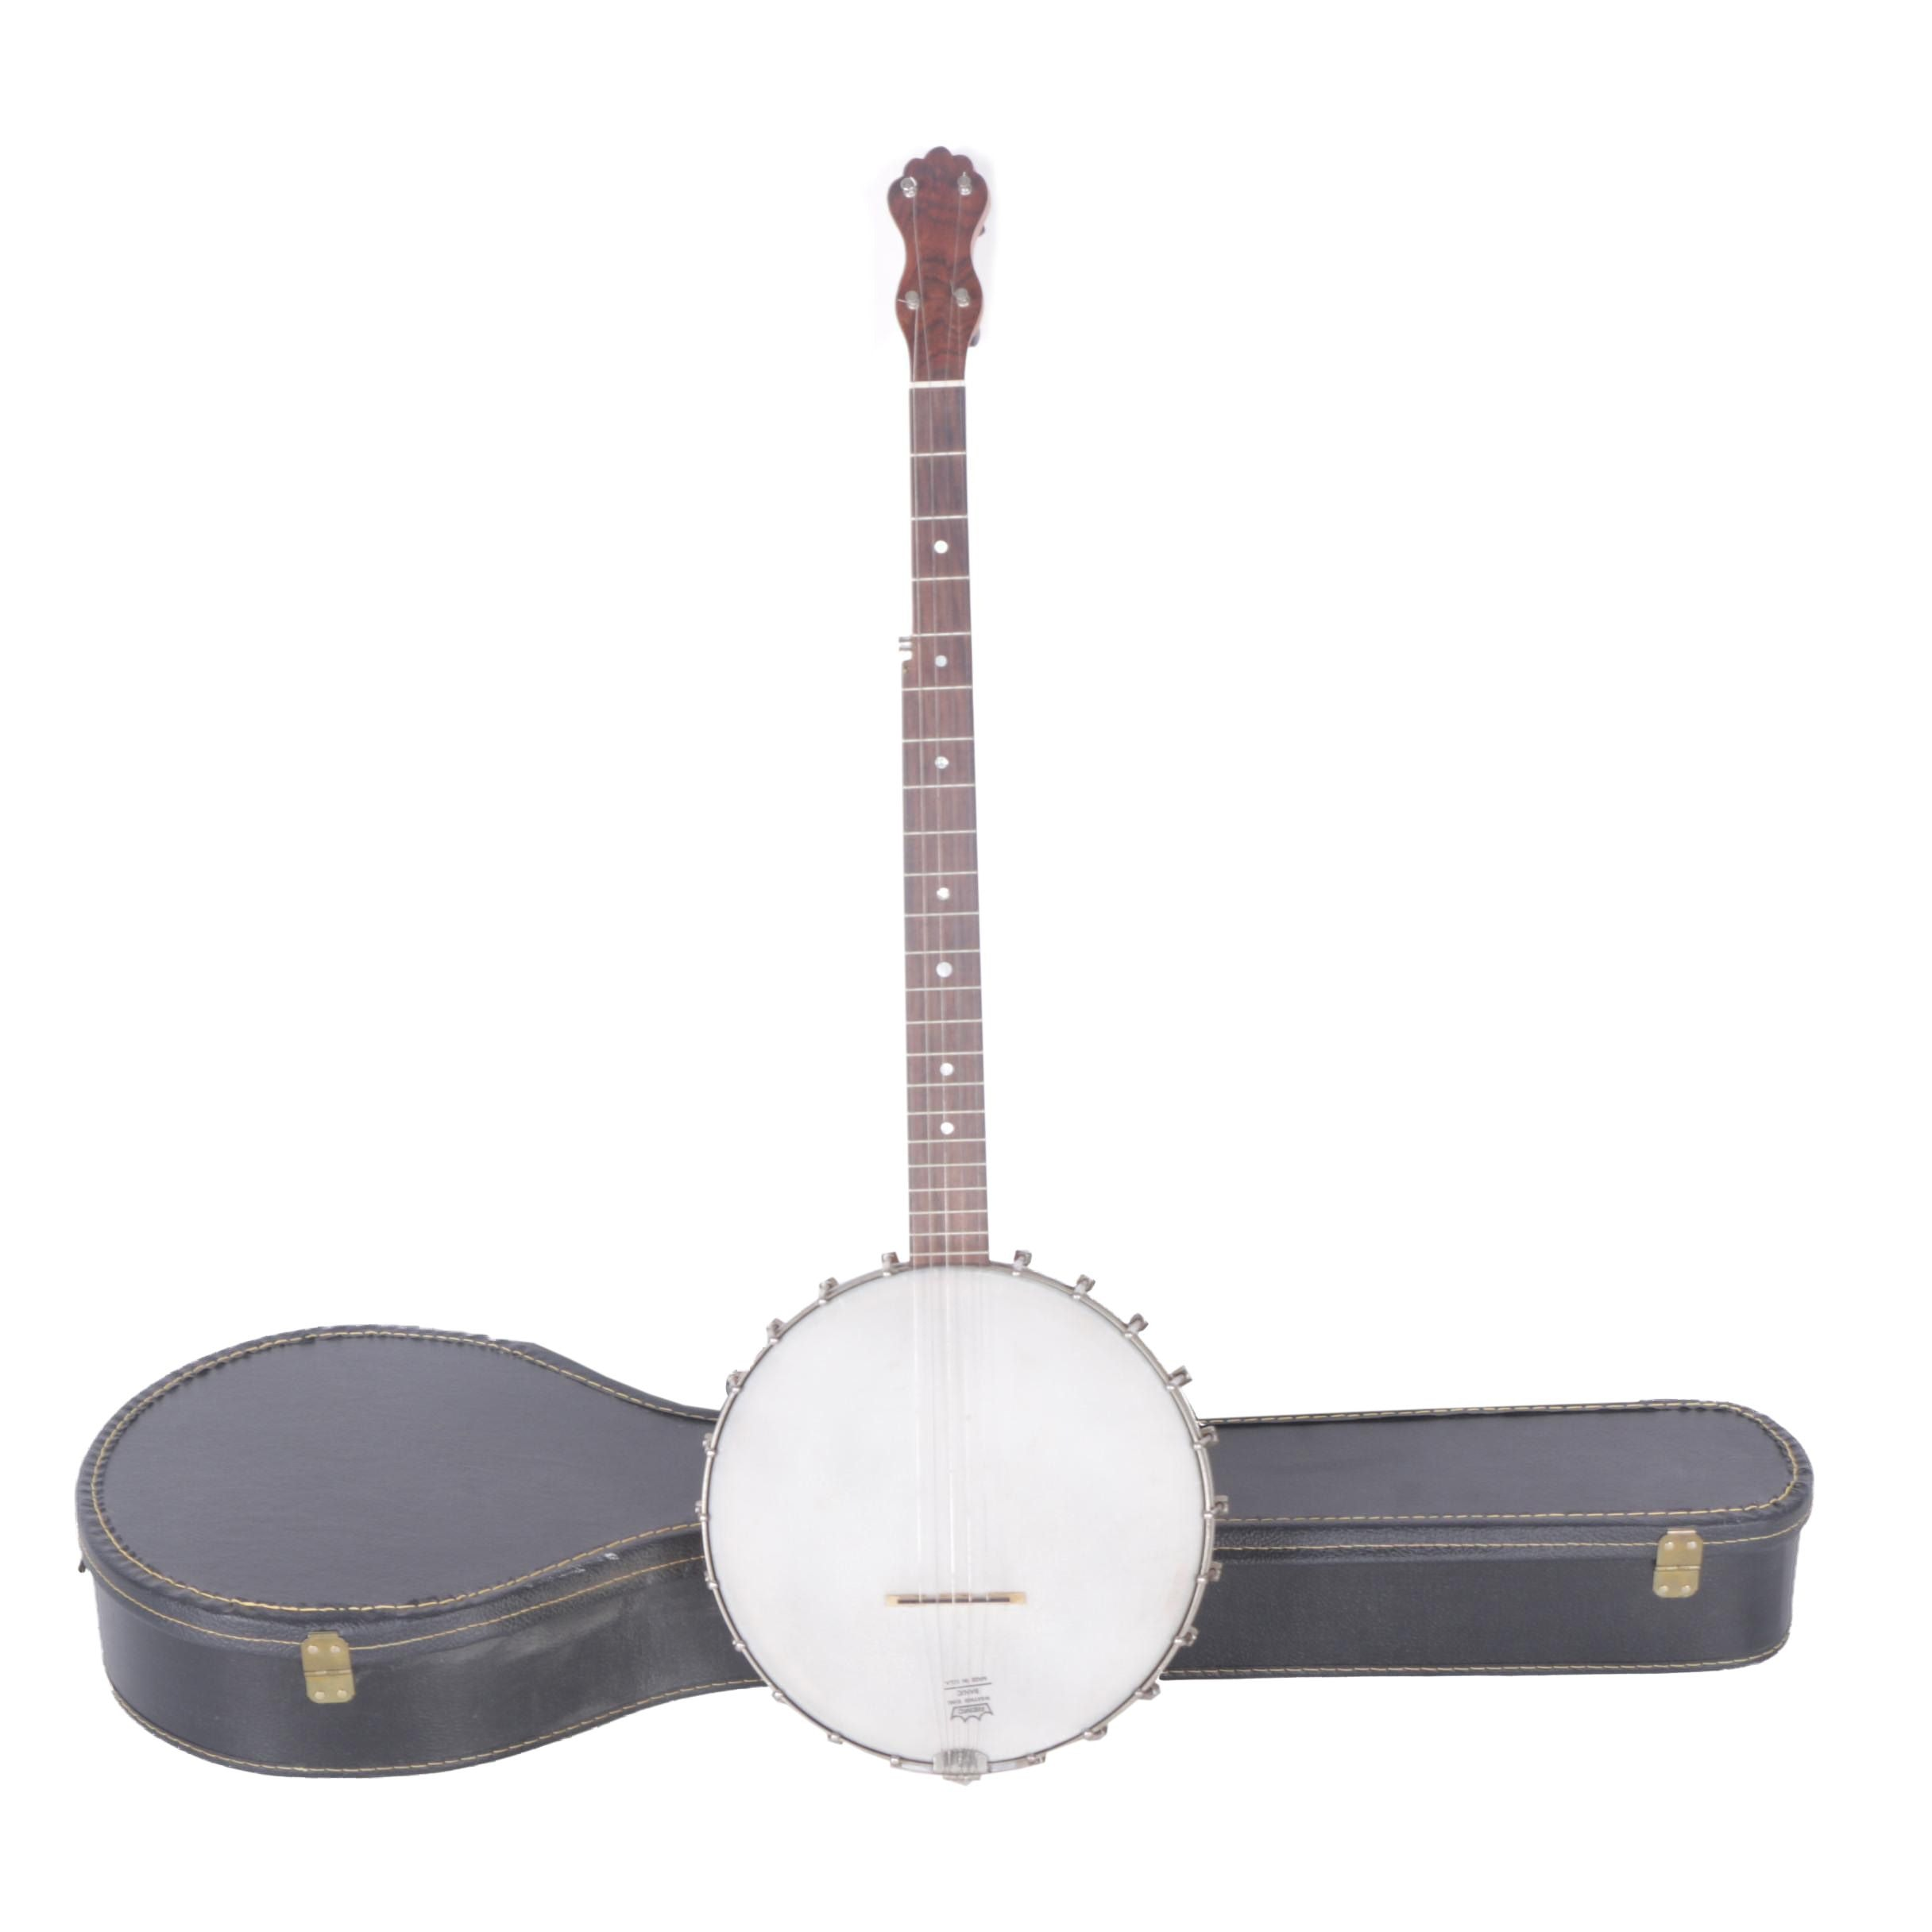 Five-String Openback Tenor Banjo with Hardshell Case